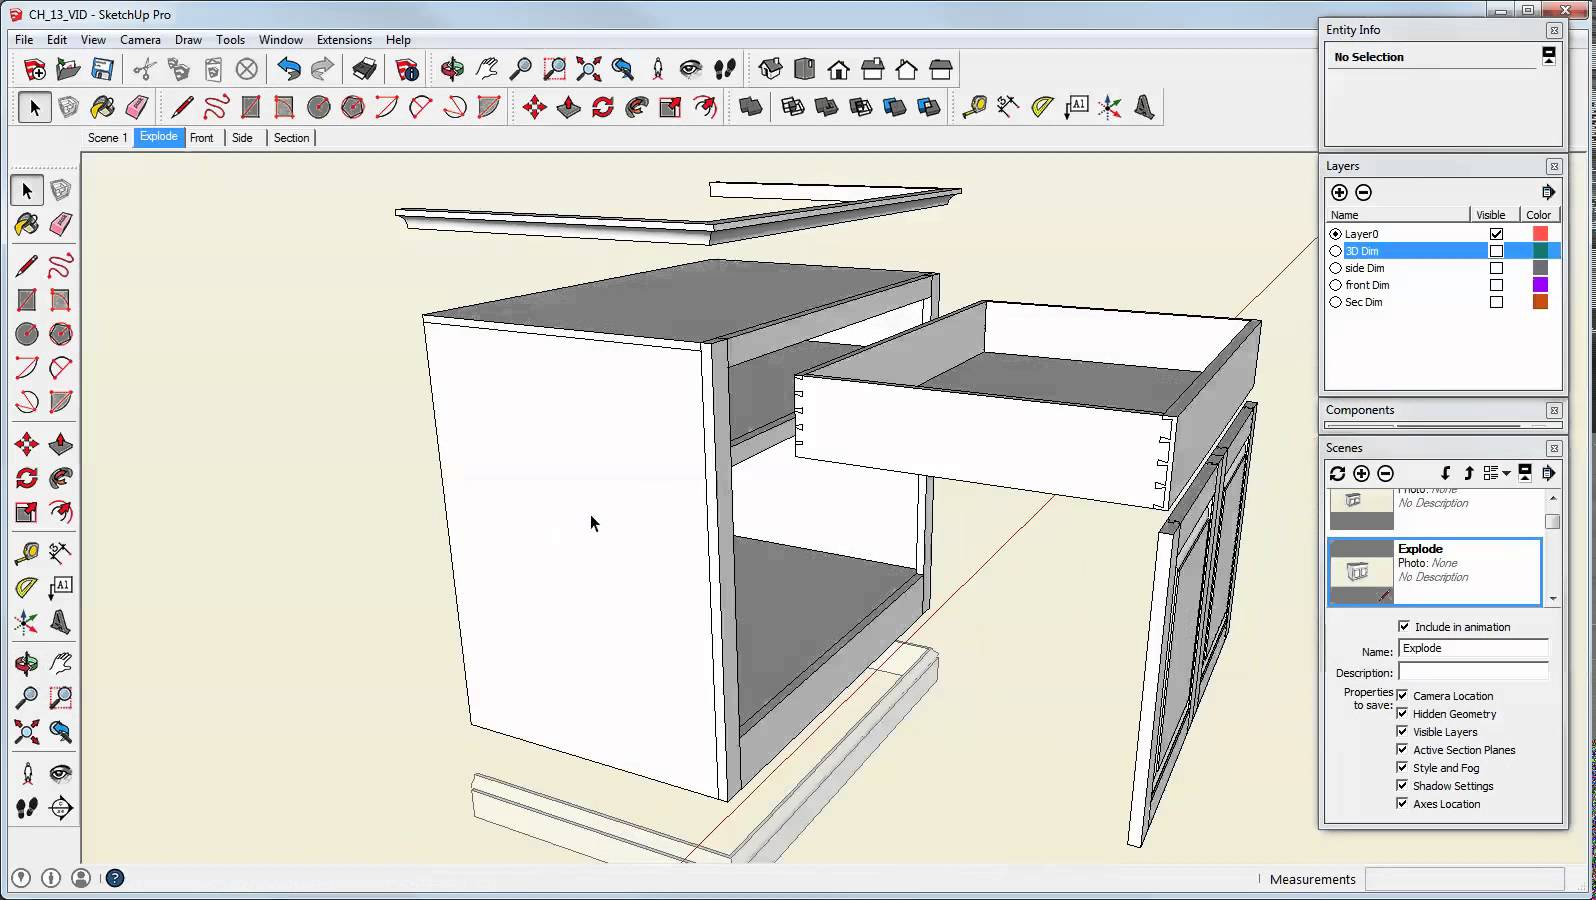 1596x900 Make An Exploded View In Sketchup